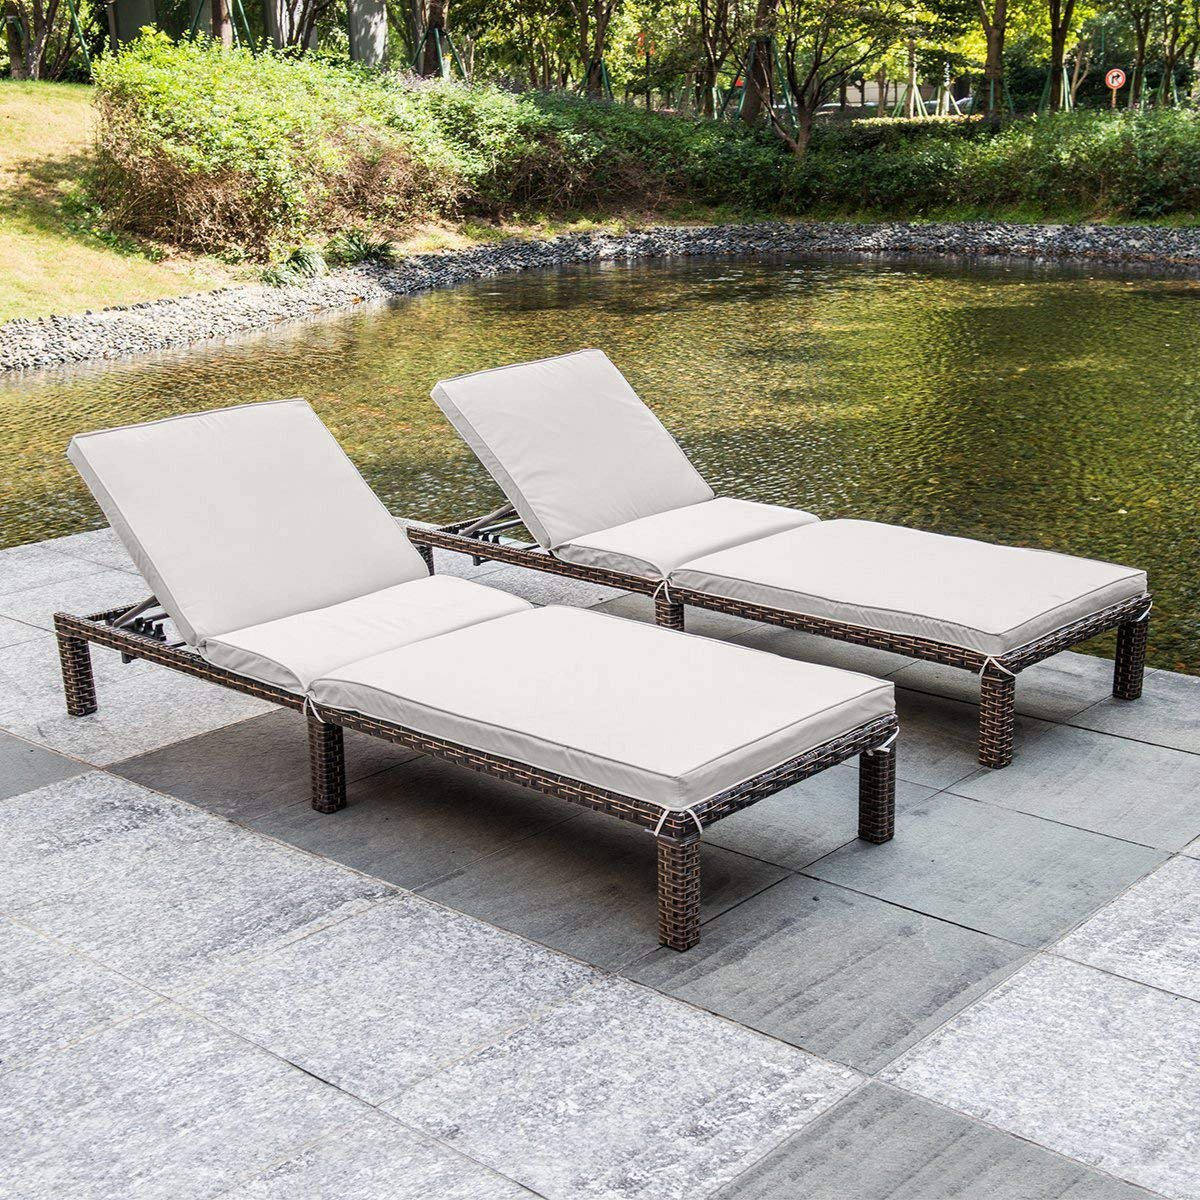 MAGIC UNION Patio Adjustable Wicker Chaise Lounge with Cushions Sets of 2 by MAGIC UNION (Image #1)